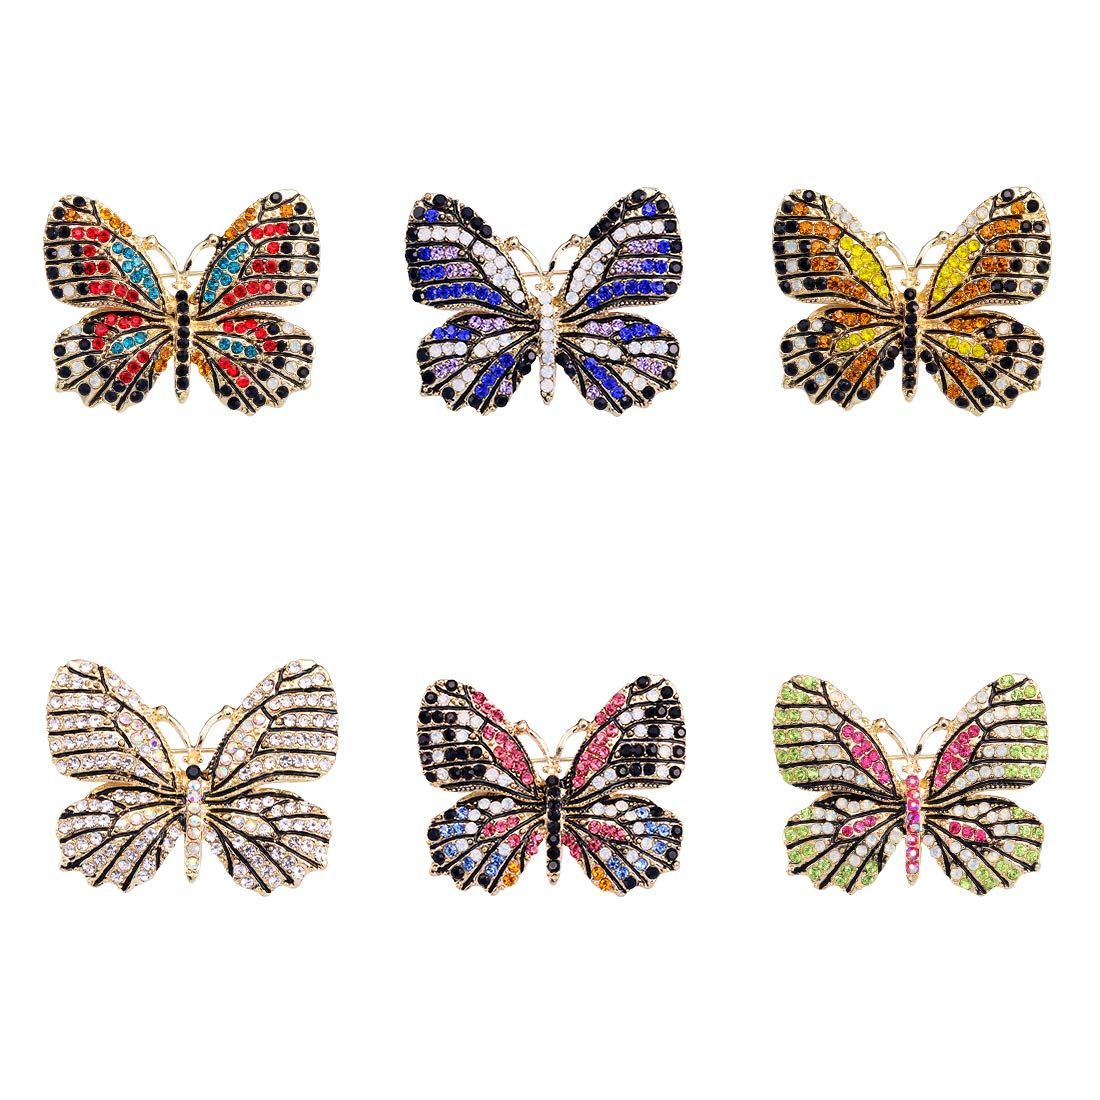 WeimanJewelry Lot6pcs Multicolor Rhinestone Crystal Butterfly Brooch Pin Set for Women by WeimanJewelry (Image #1)